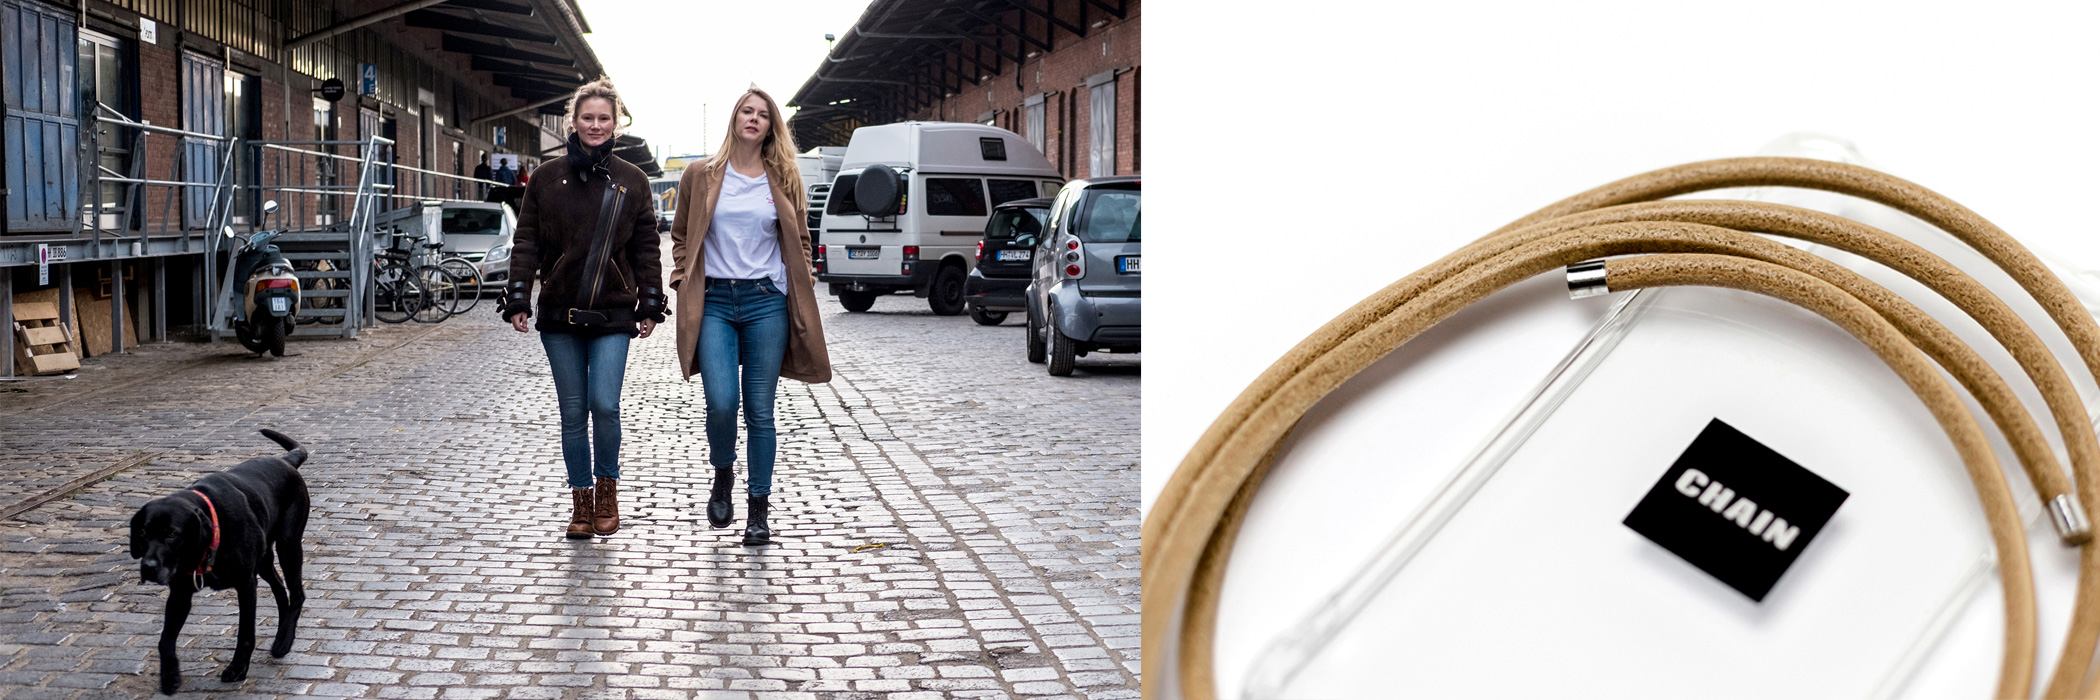 Lena und Jana gründeten im Sommer 2018 das Hamburger Handyketten-Label Chain Products. Credit: Chain Products